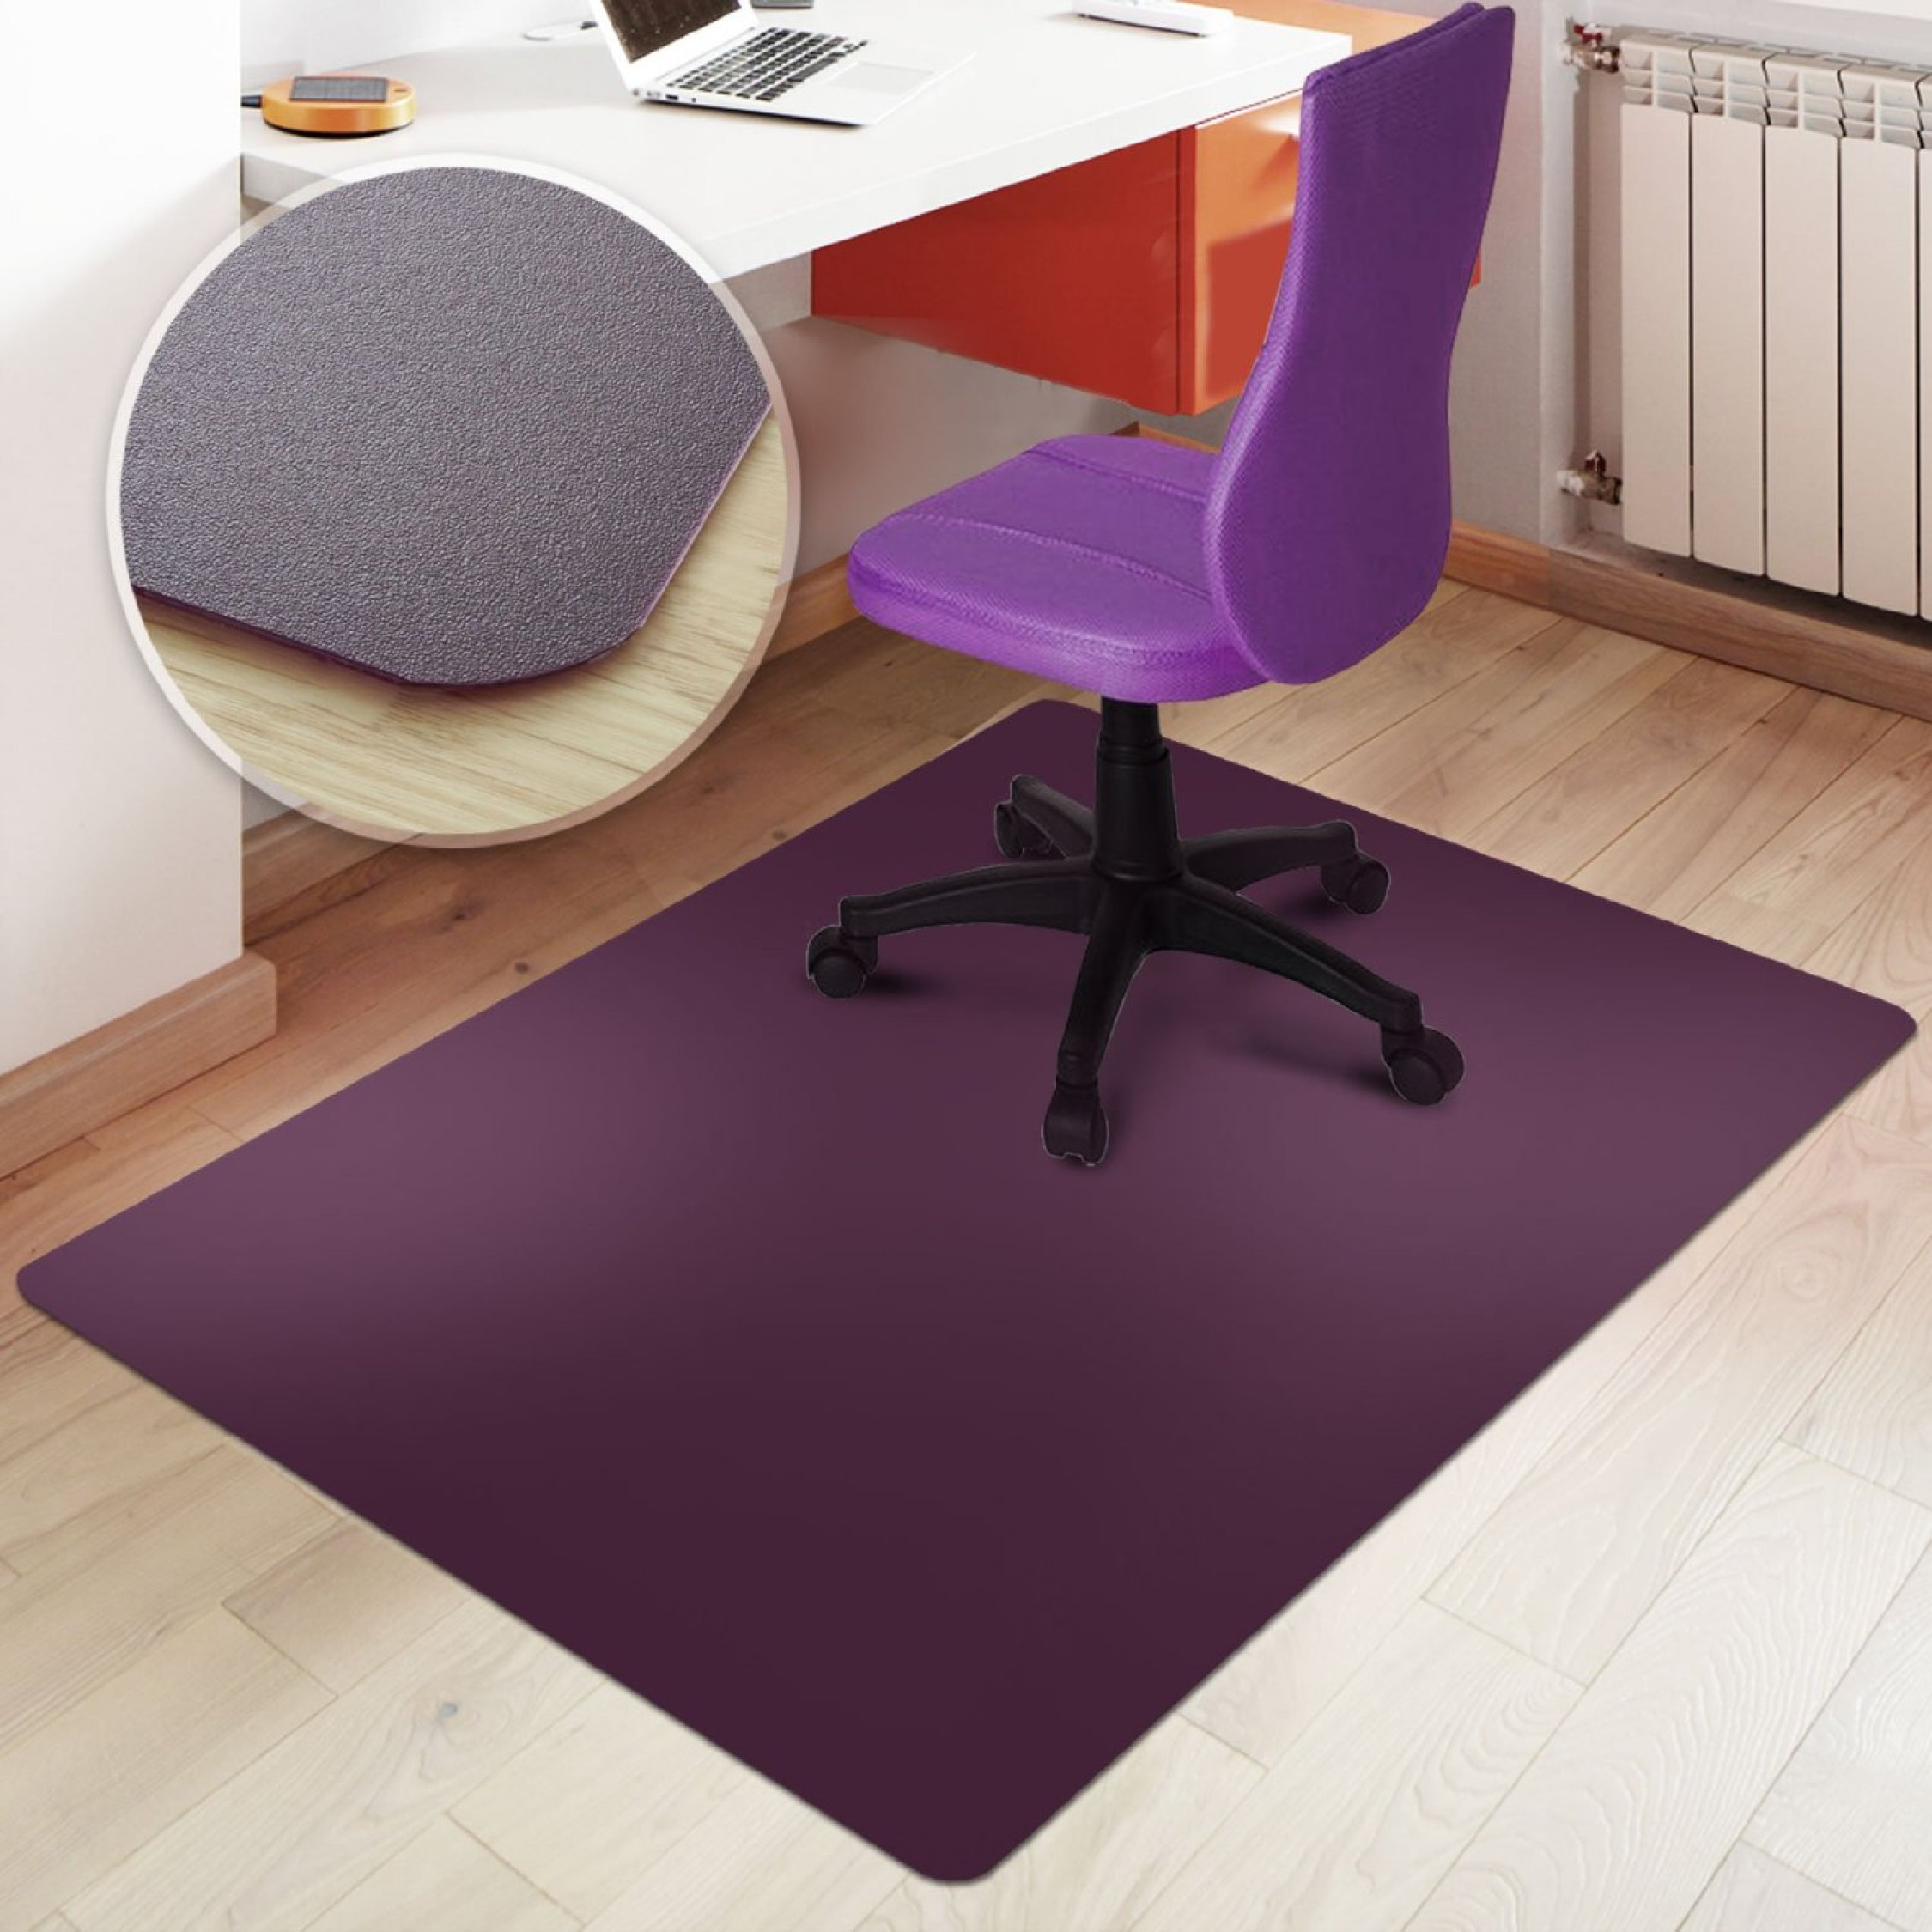 rectangular office chair mat purple hard floor protection. Black Bedroom Furniture Sets. Home Design Ideas